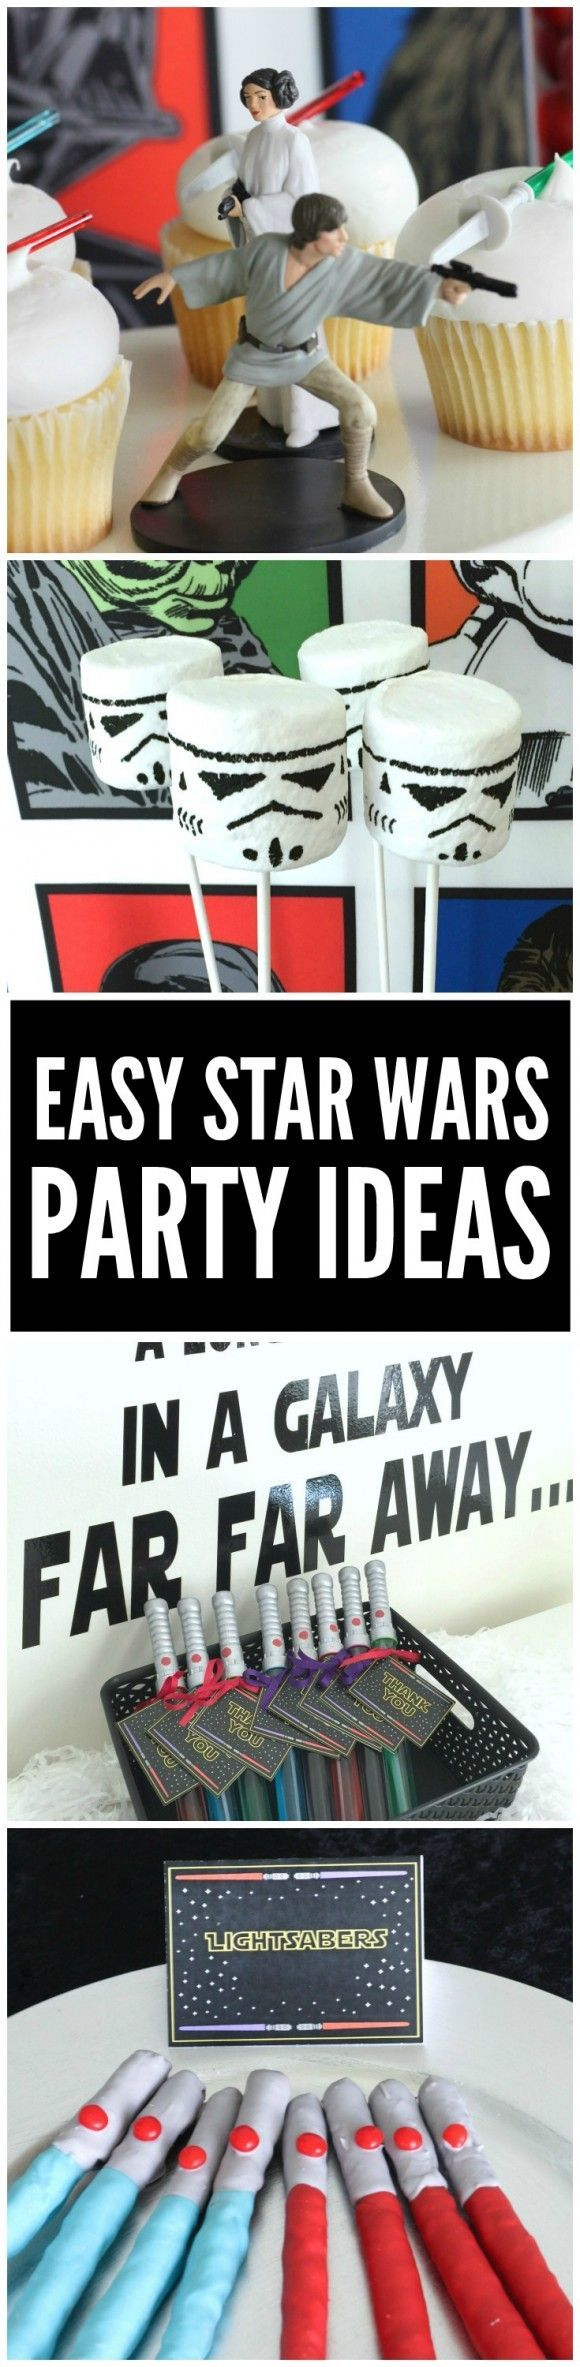 25 Best Ideas About Star Wars Party Favors On Pinterest